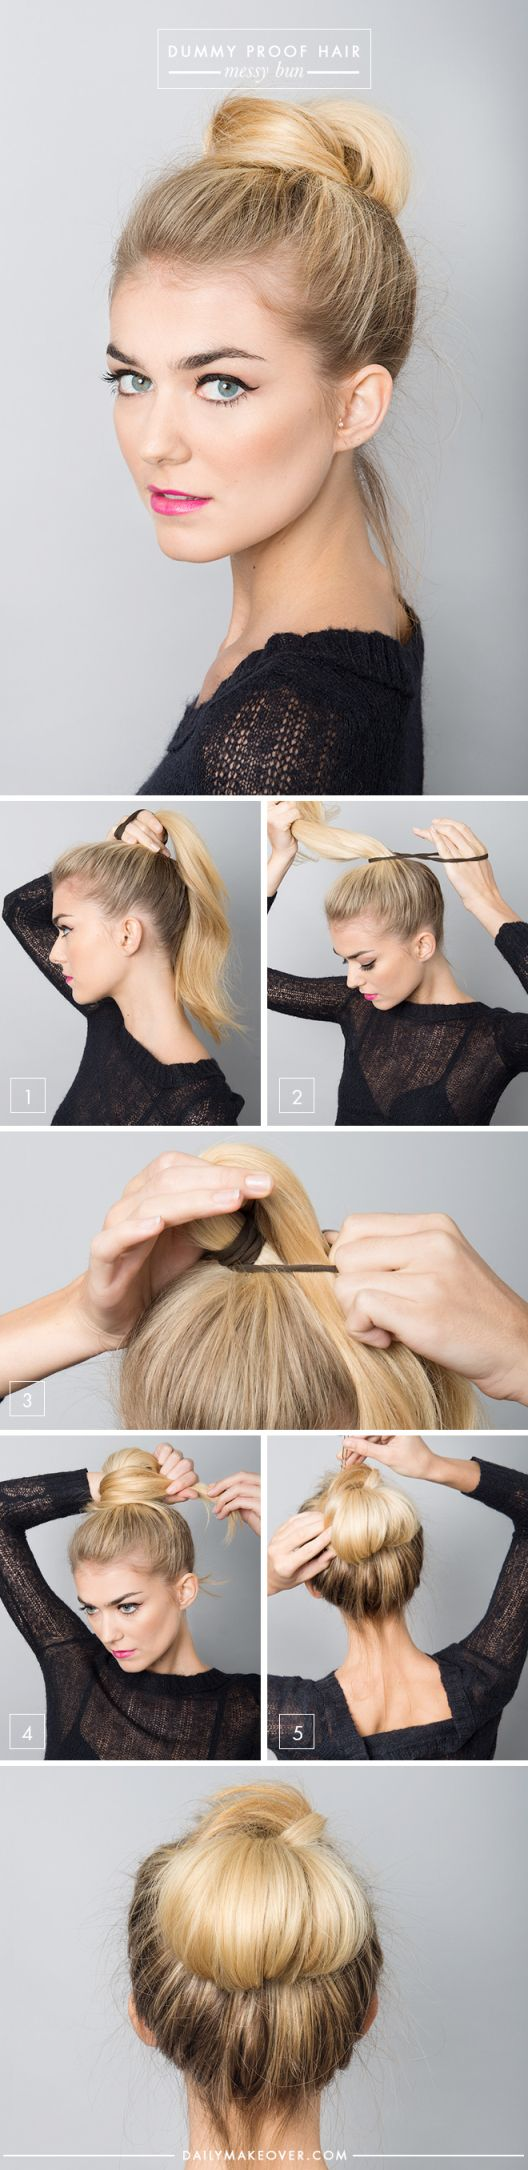 5 Dummy Proof Hairstyles That Everyone Can Master   | Daily Makeover